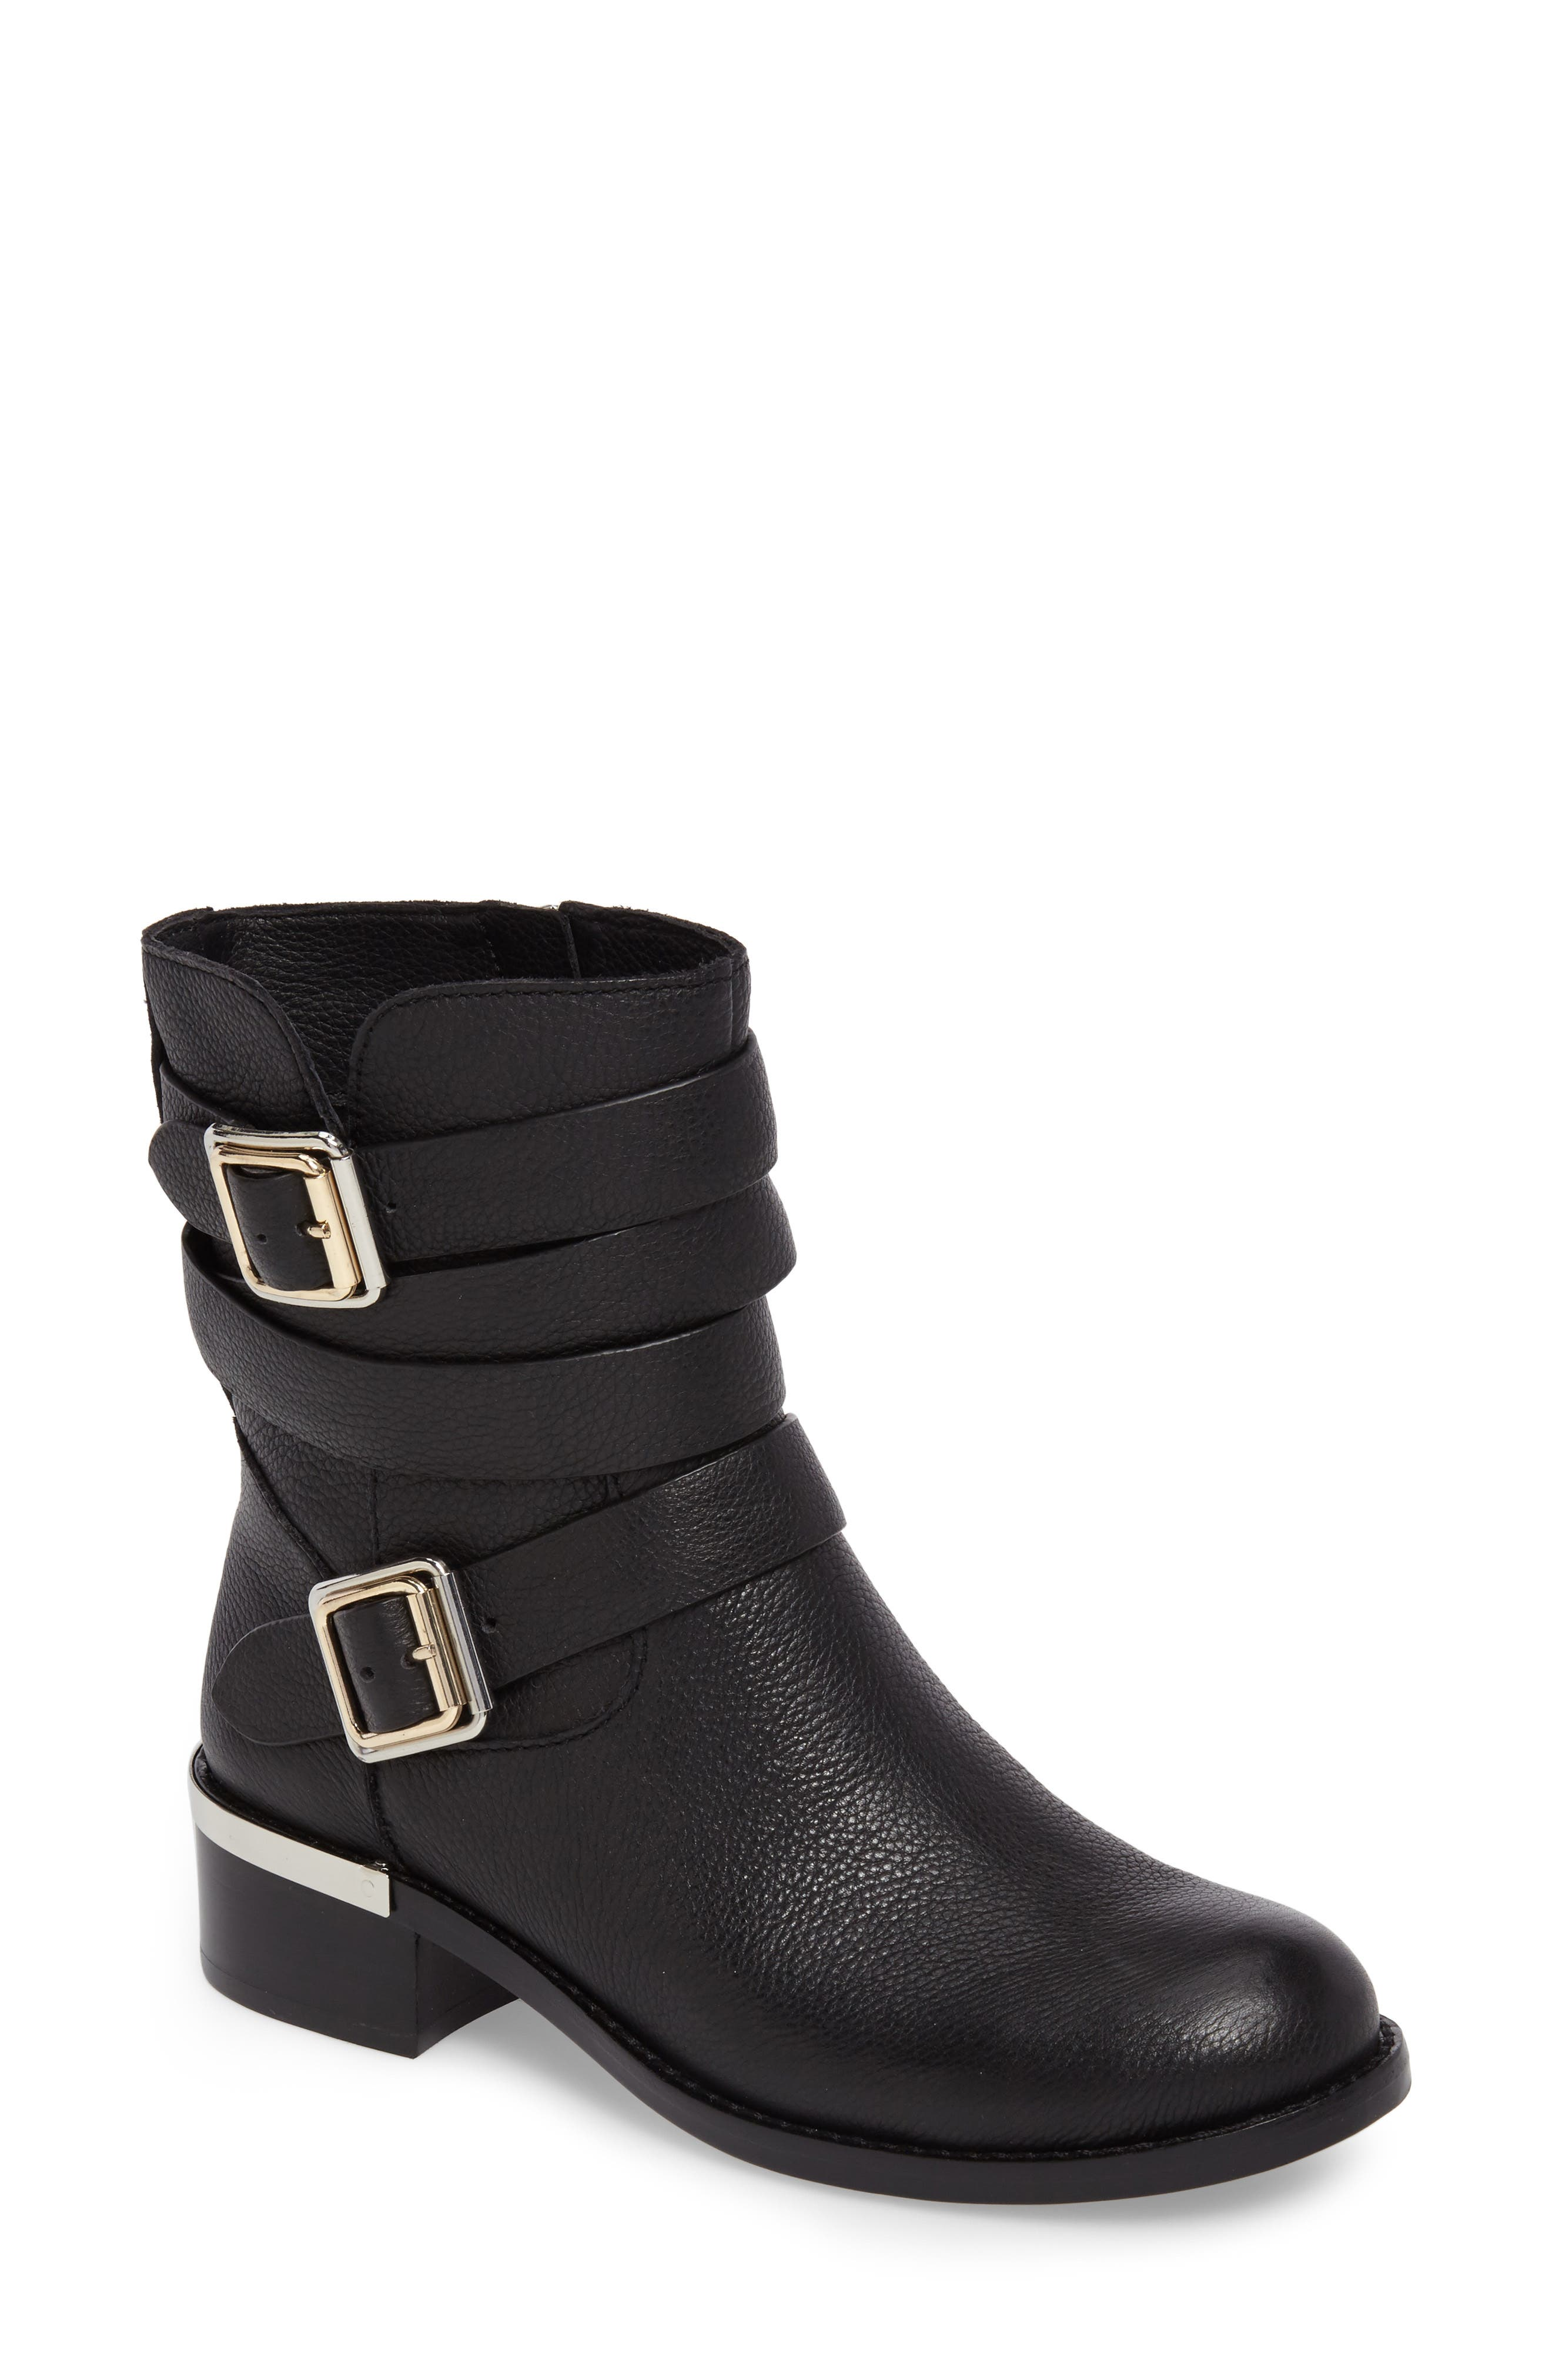 Webey Boot,                         Main,                         color, 002